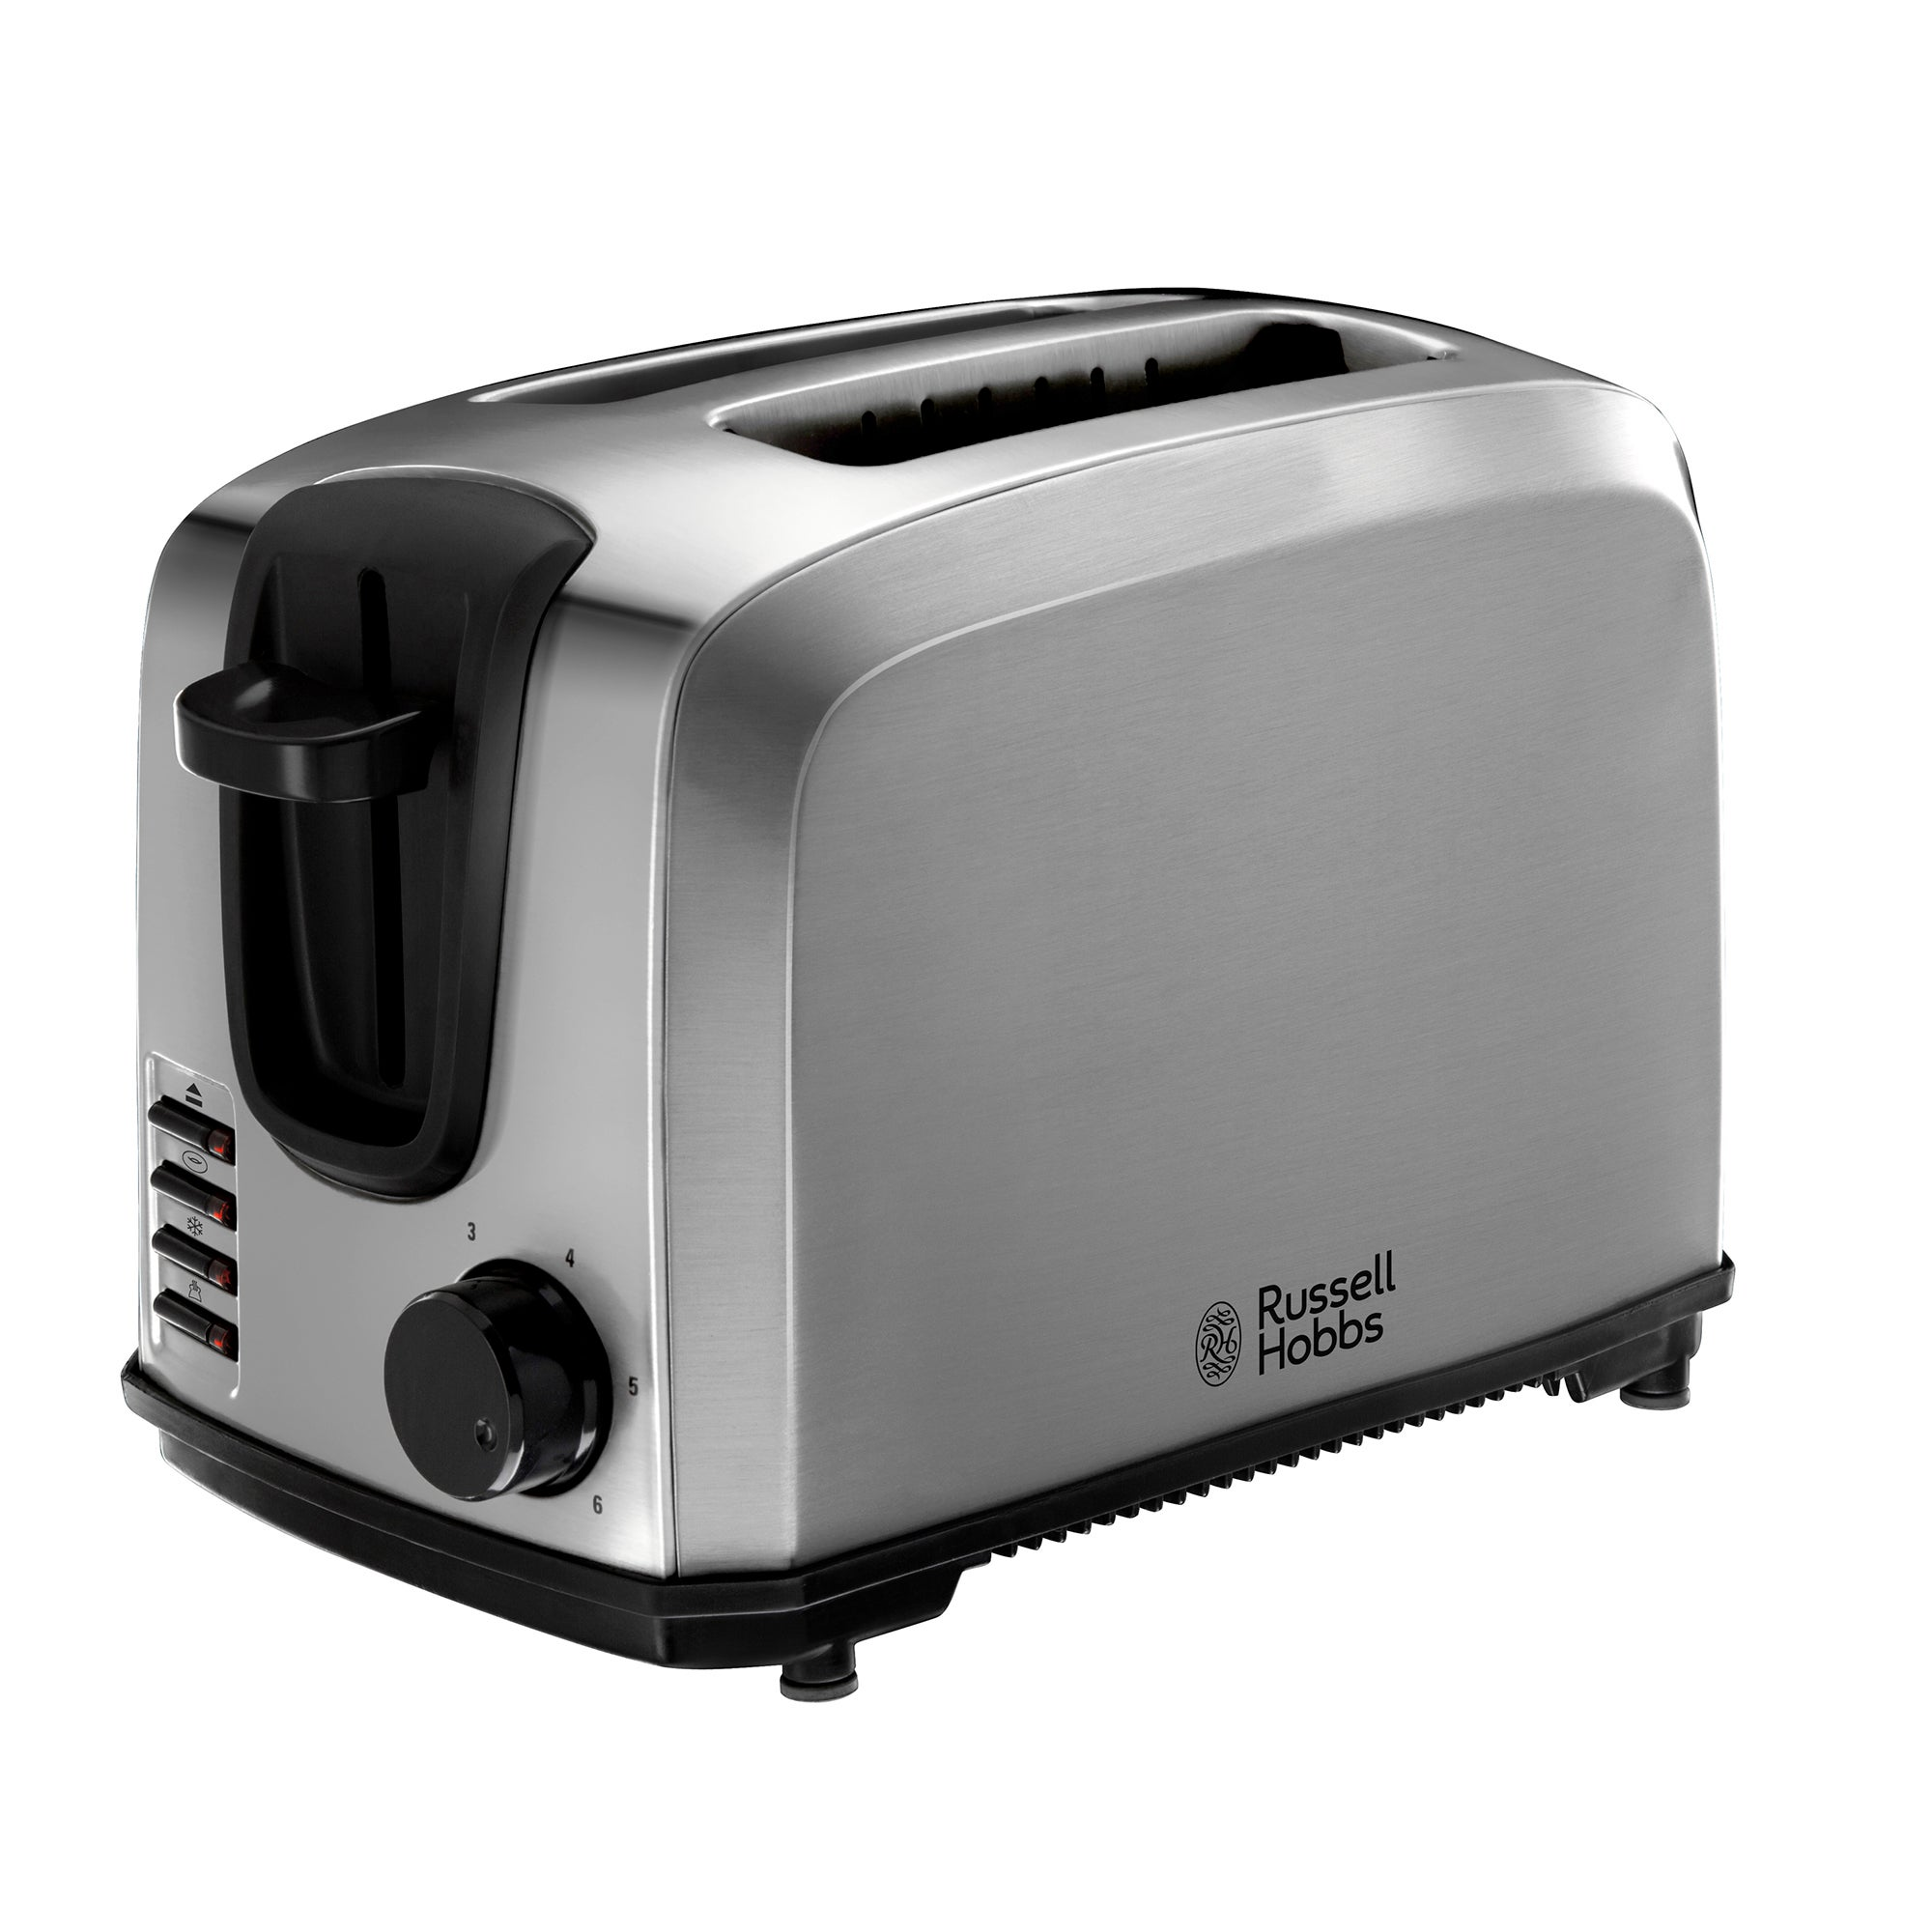 Russell Hobbs Brushed Steel Toaster